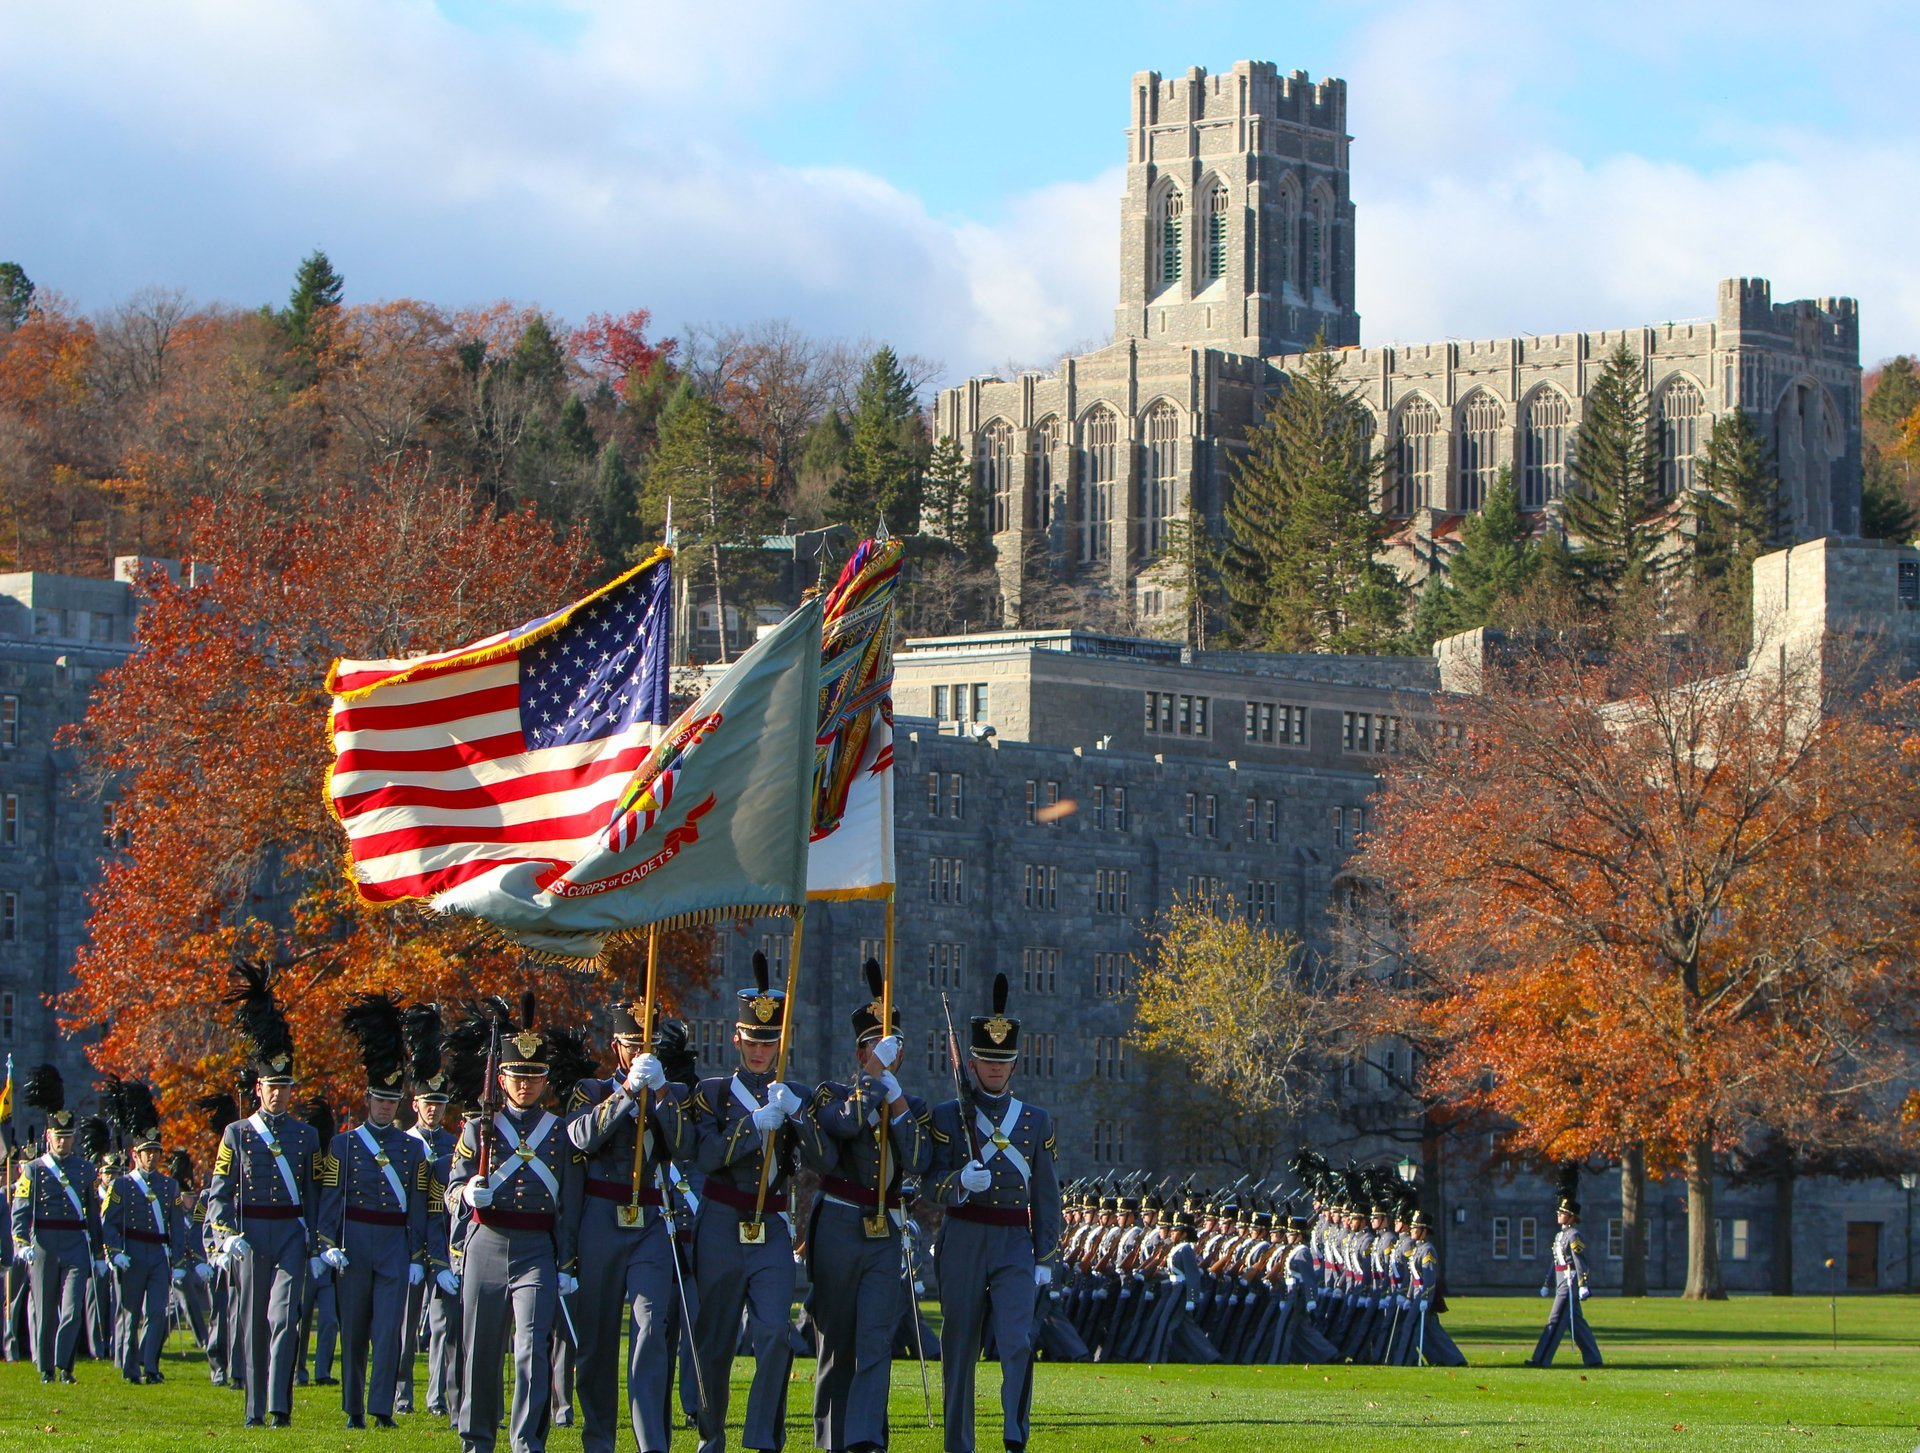 Cadets marching in front of Washington Hall